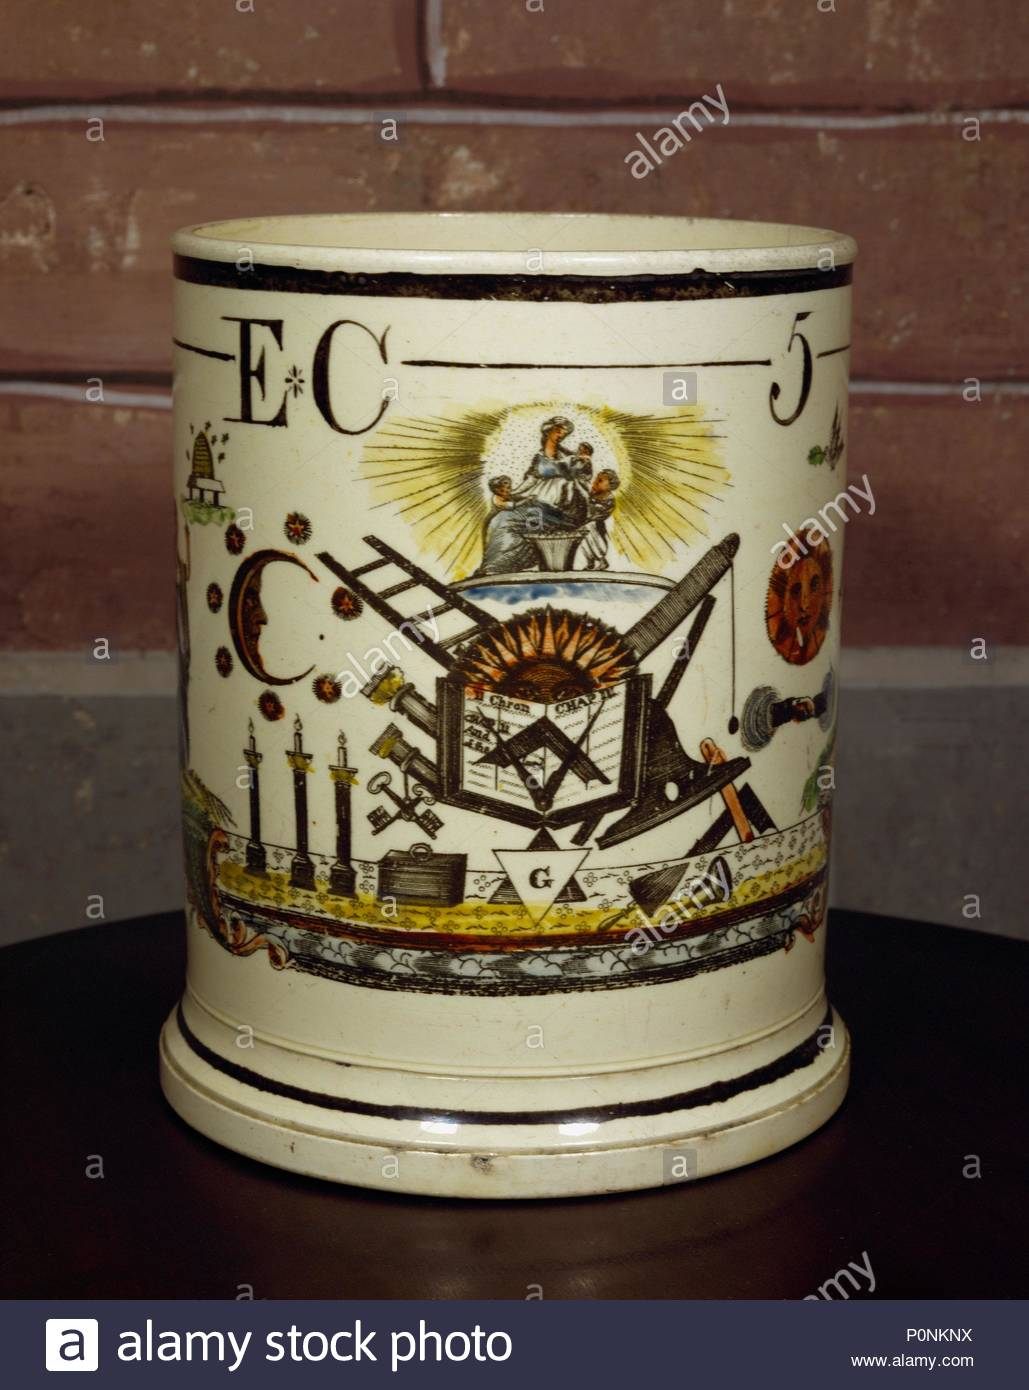 Freemasons Goblet Stoneware With Freemasons Symbols L To R